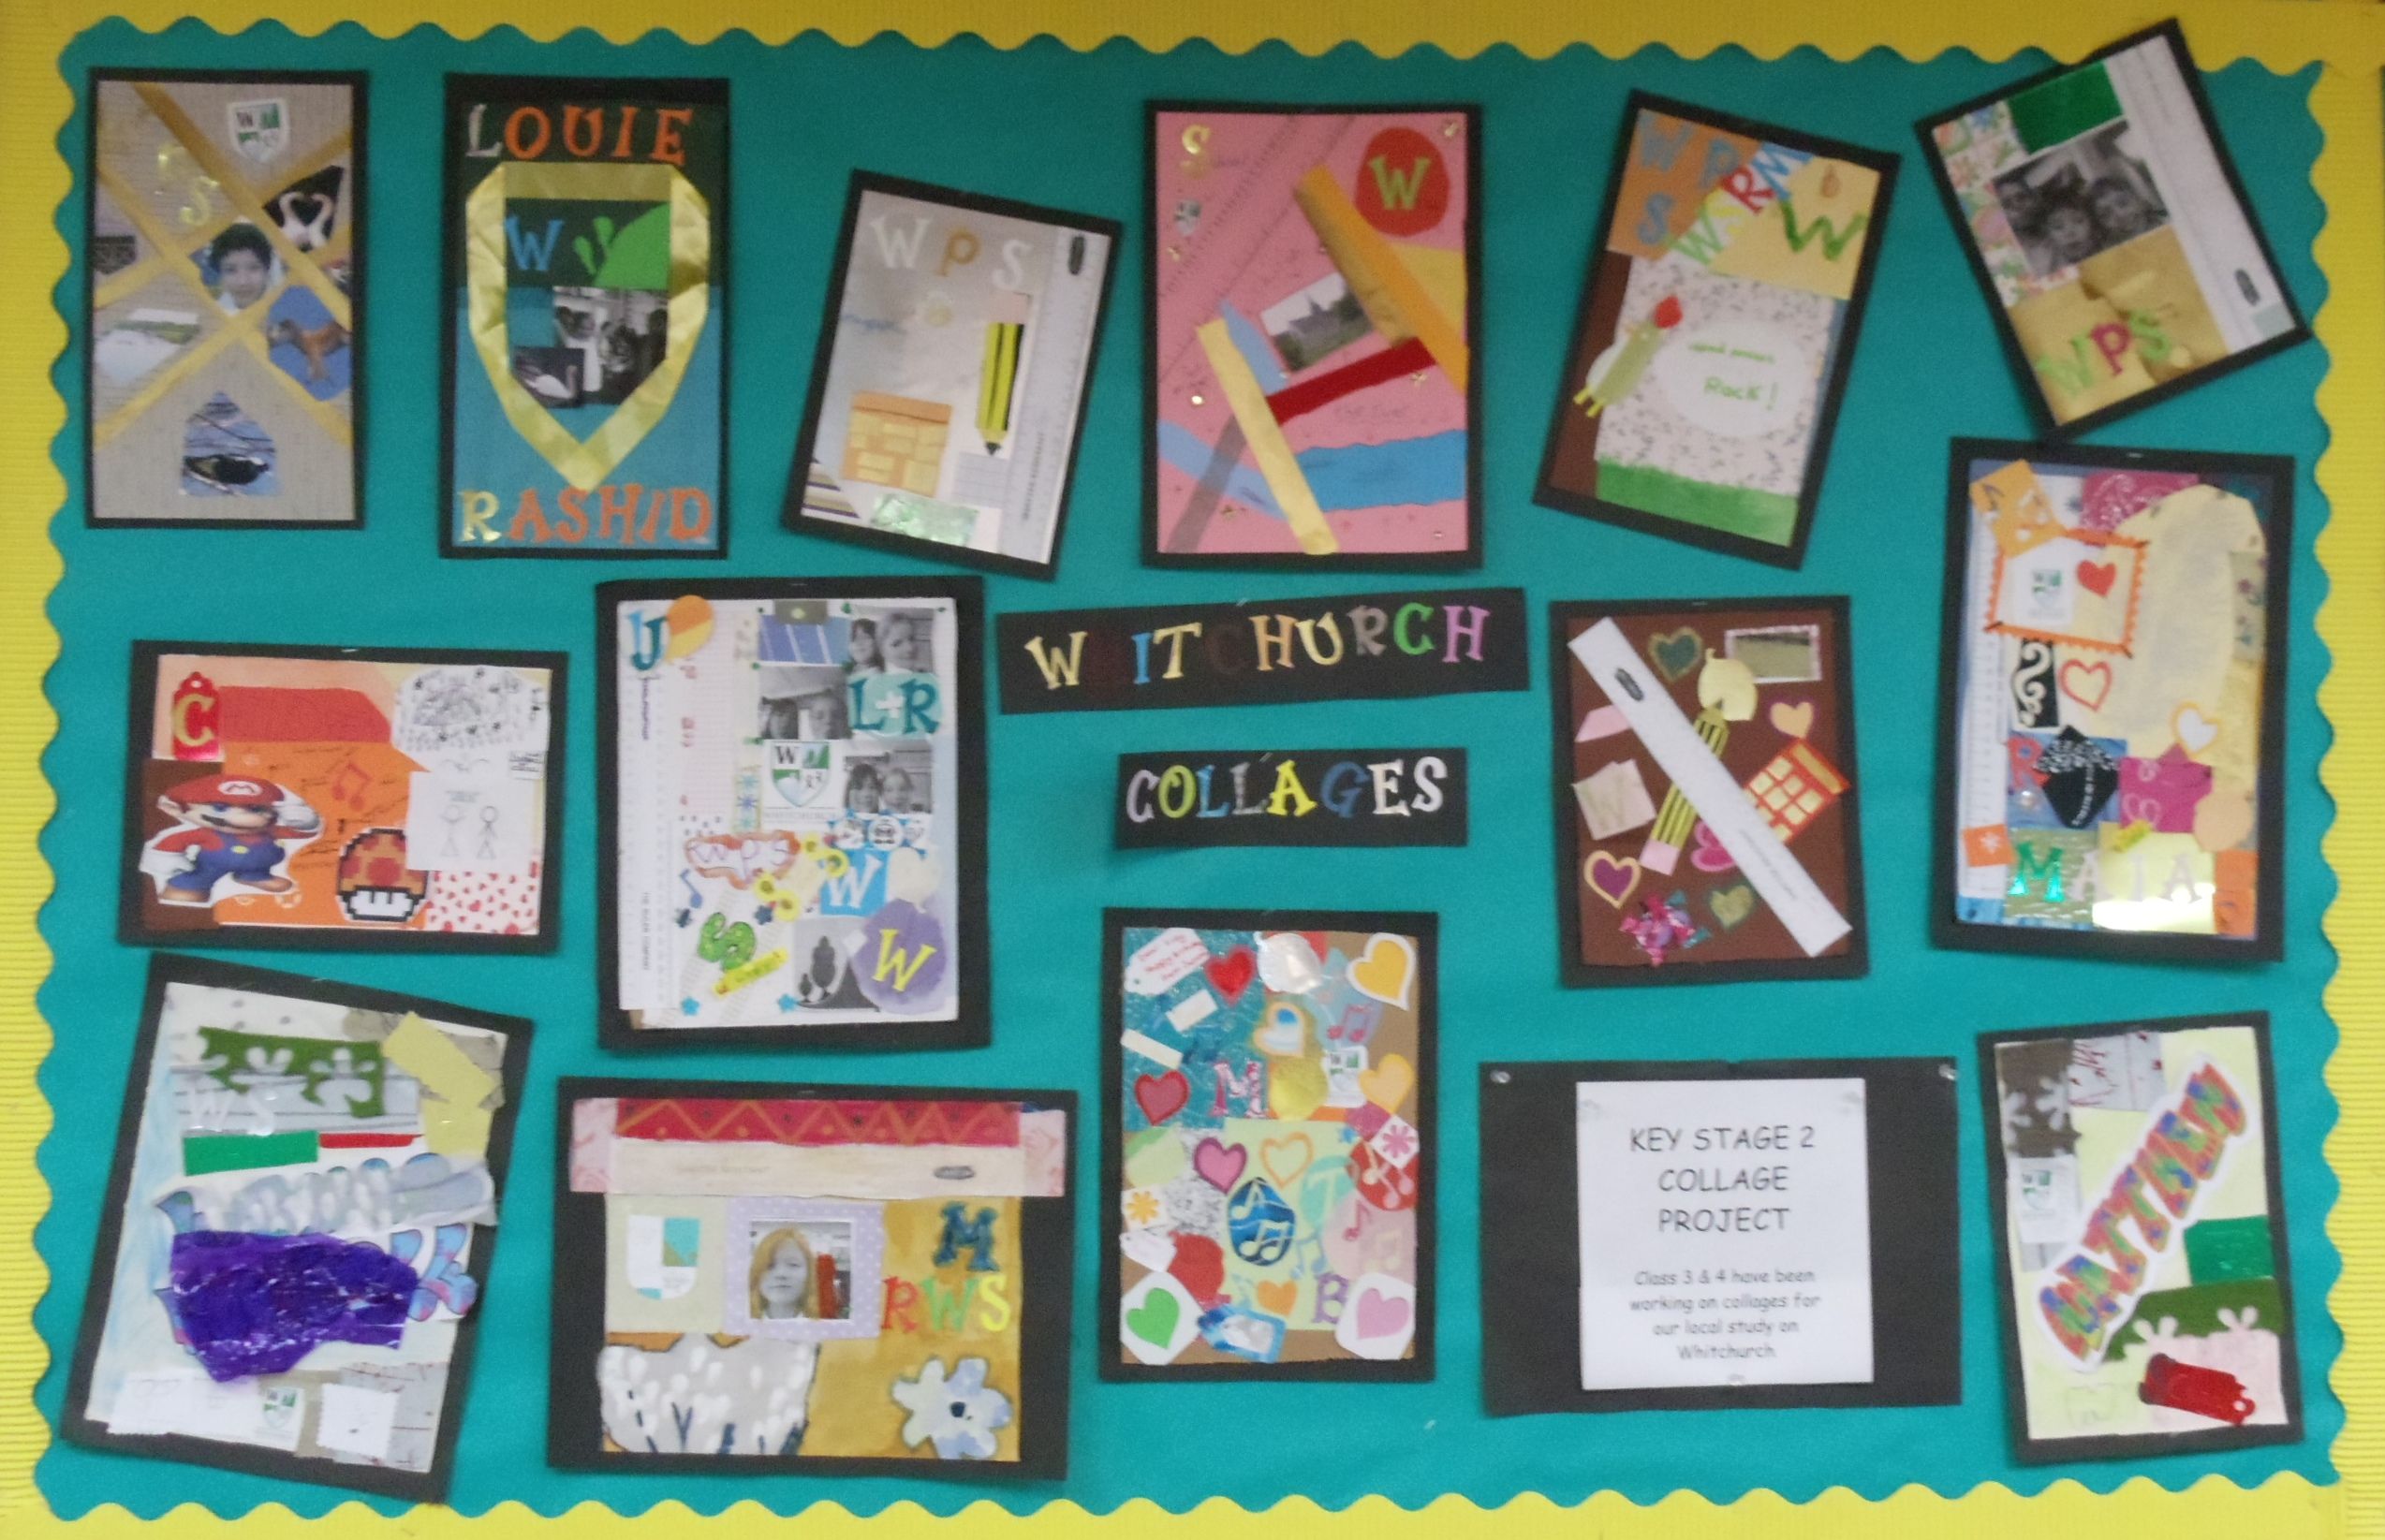 Wall Display4 Whitchurch Primary School